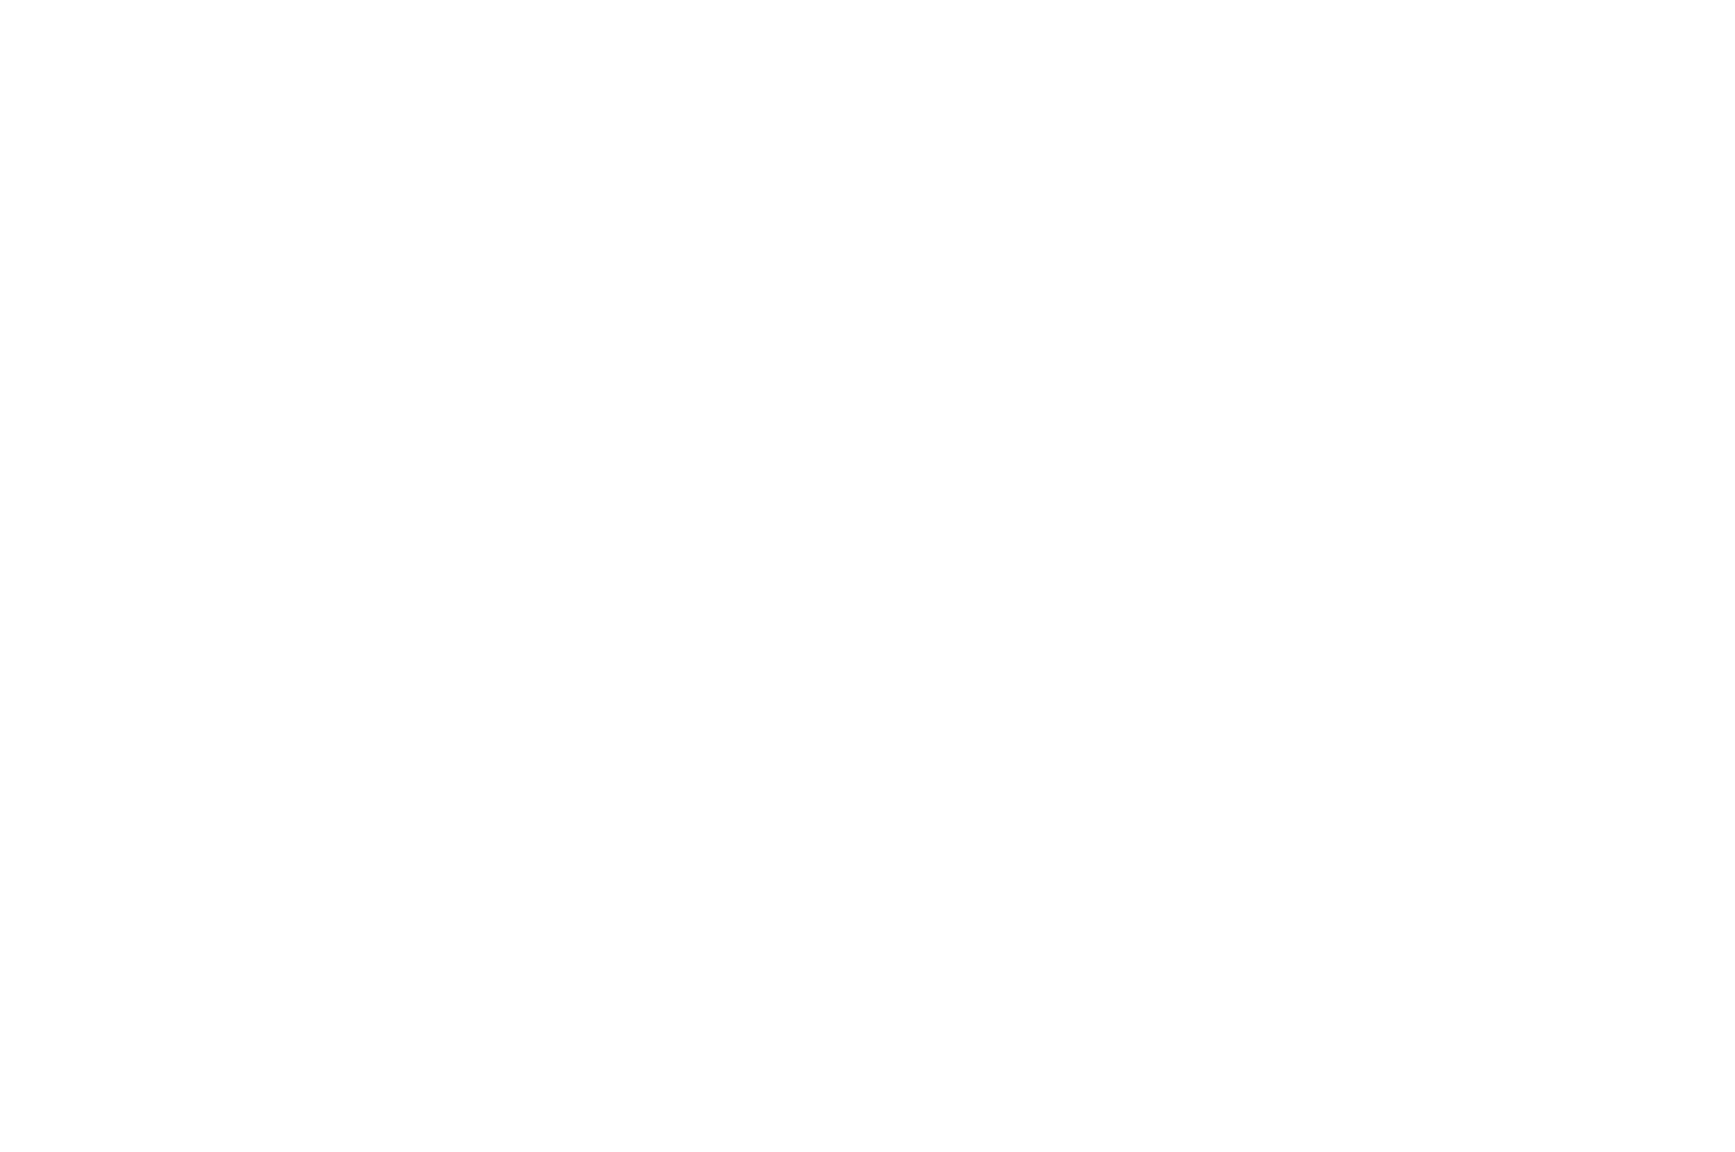 OFFICIAL SELECTION - Venice Shorts - 2020